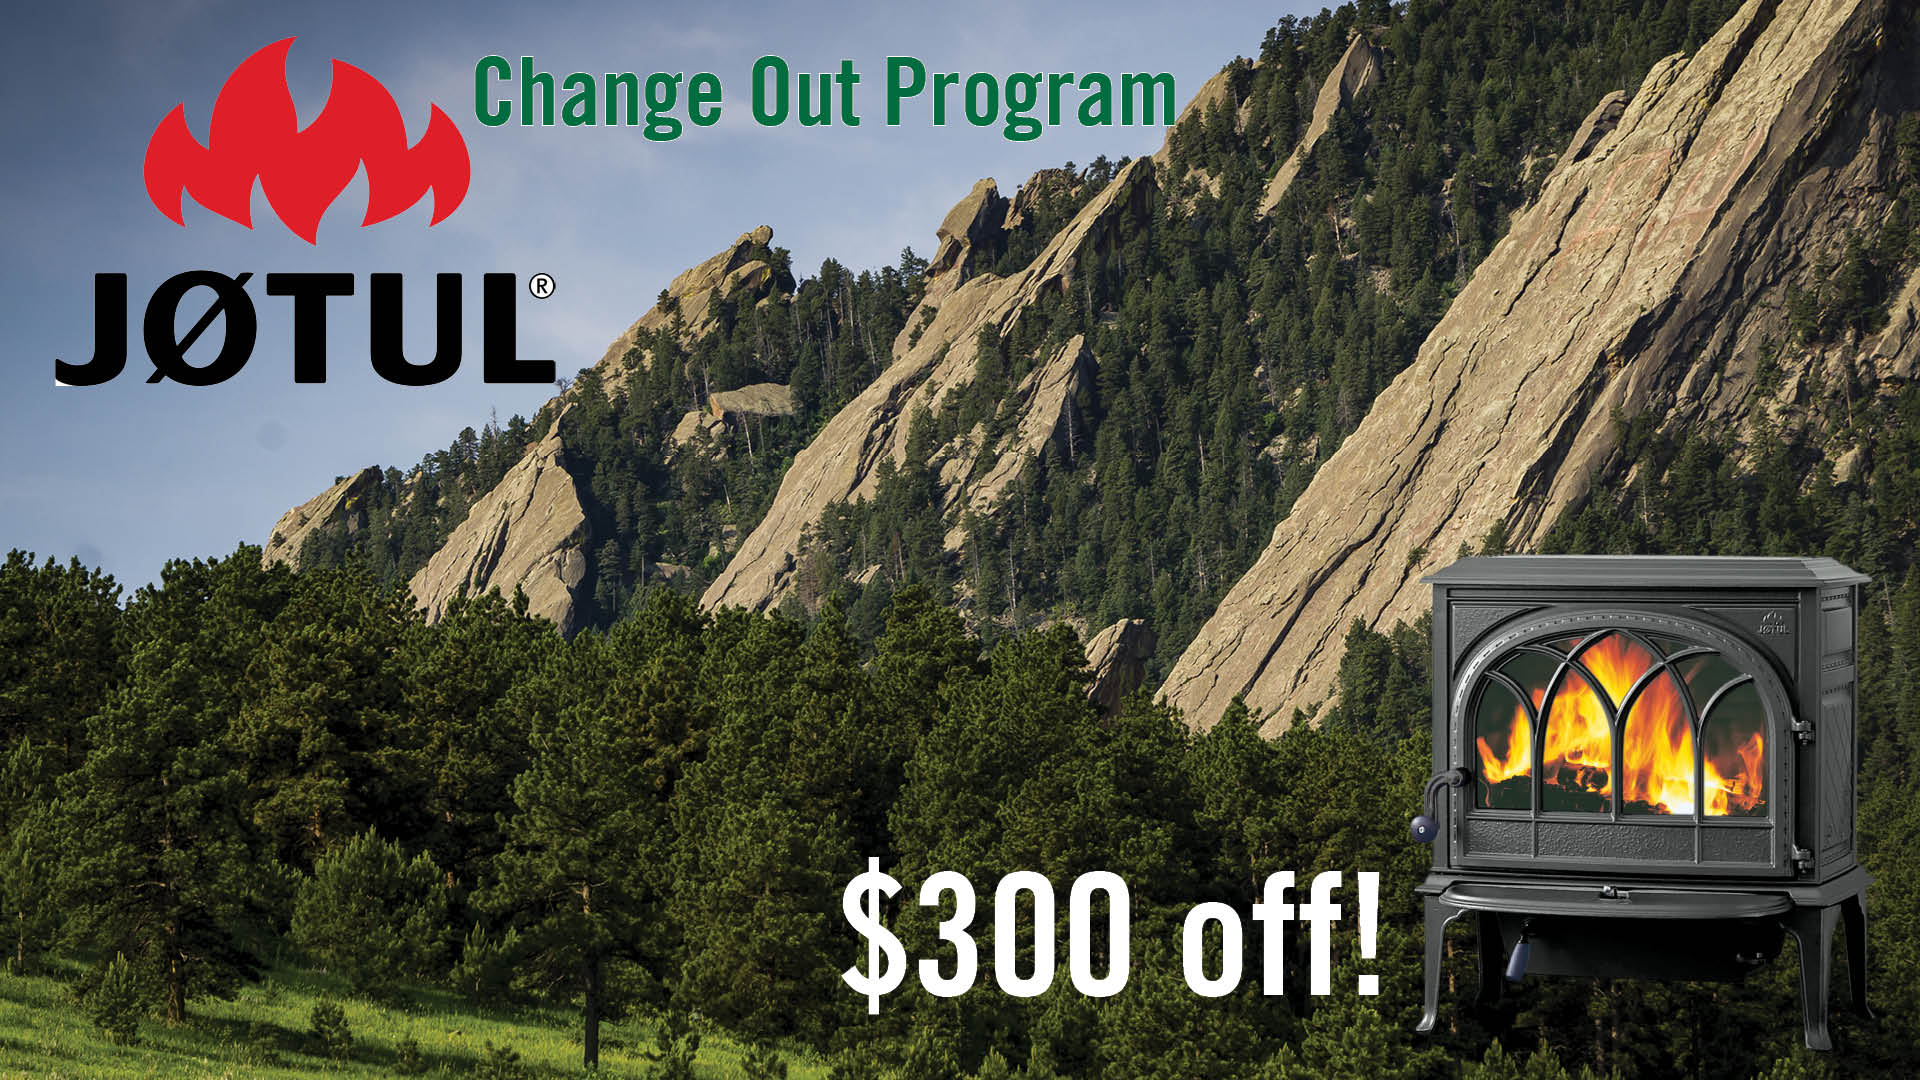 Jotul Change Out Program